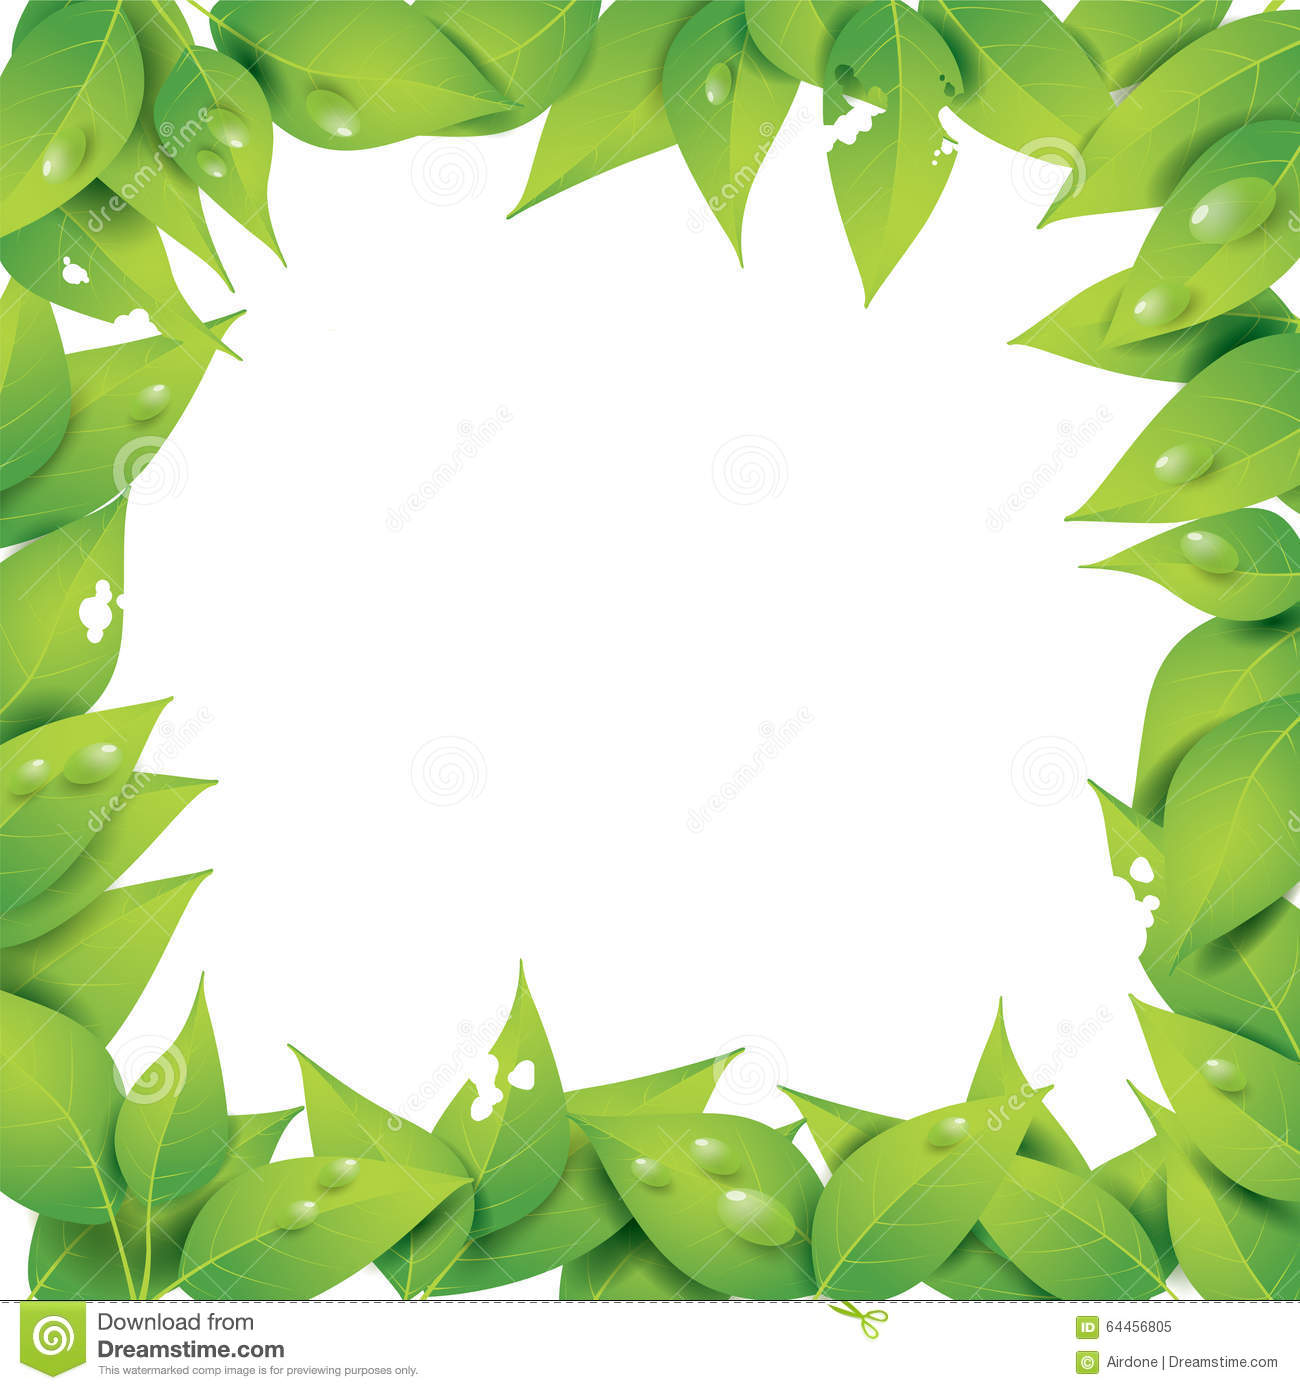 Frame Of Leaves With Empty Space In The Middle Stock Vector.